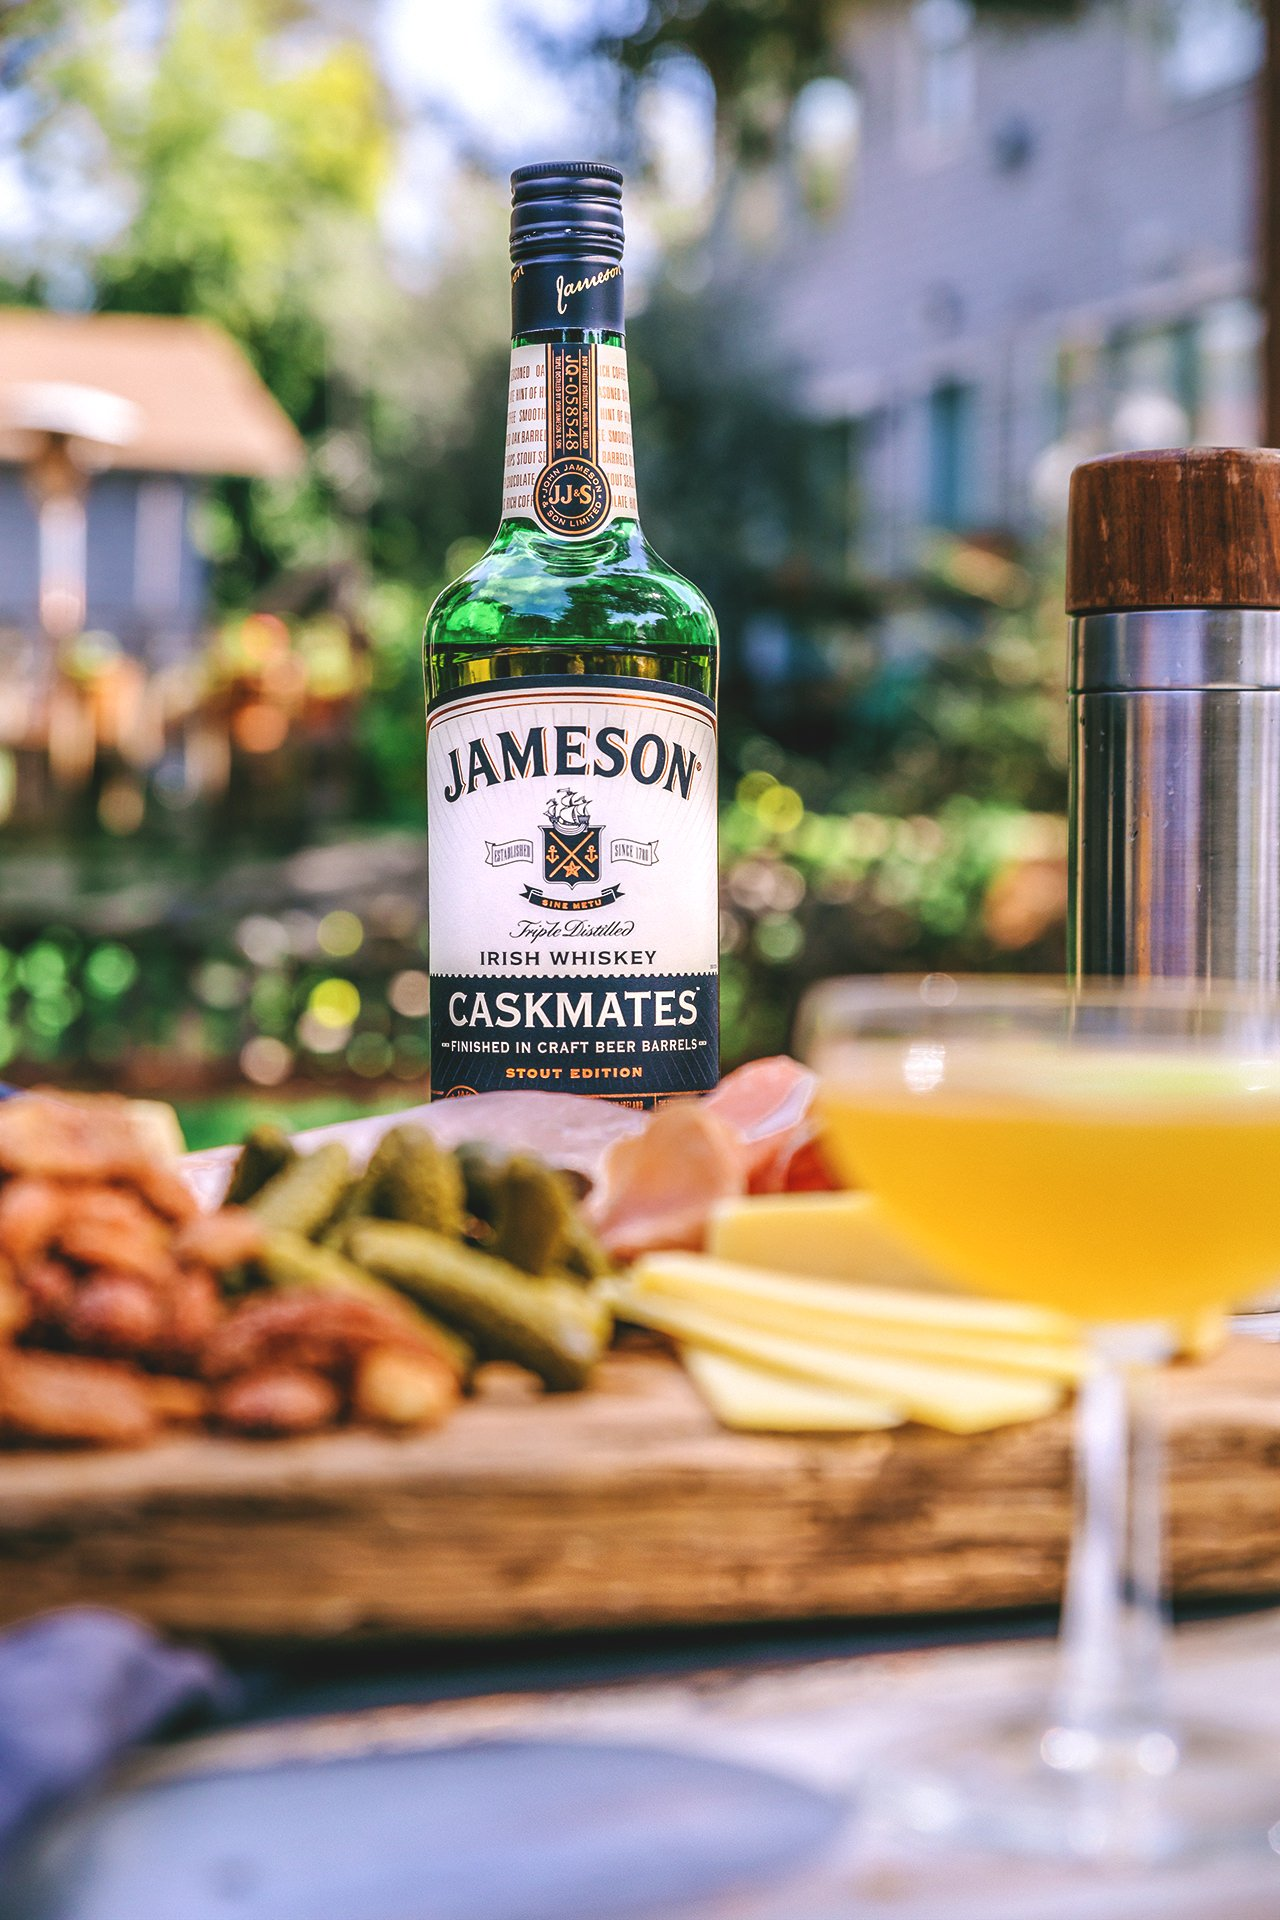 Green and Black Cocktail & Irish Whiskey-Glazed Spiced Nuts // HonestlyYUM (honestlyyum.com)